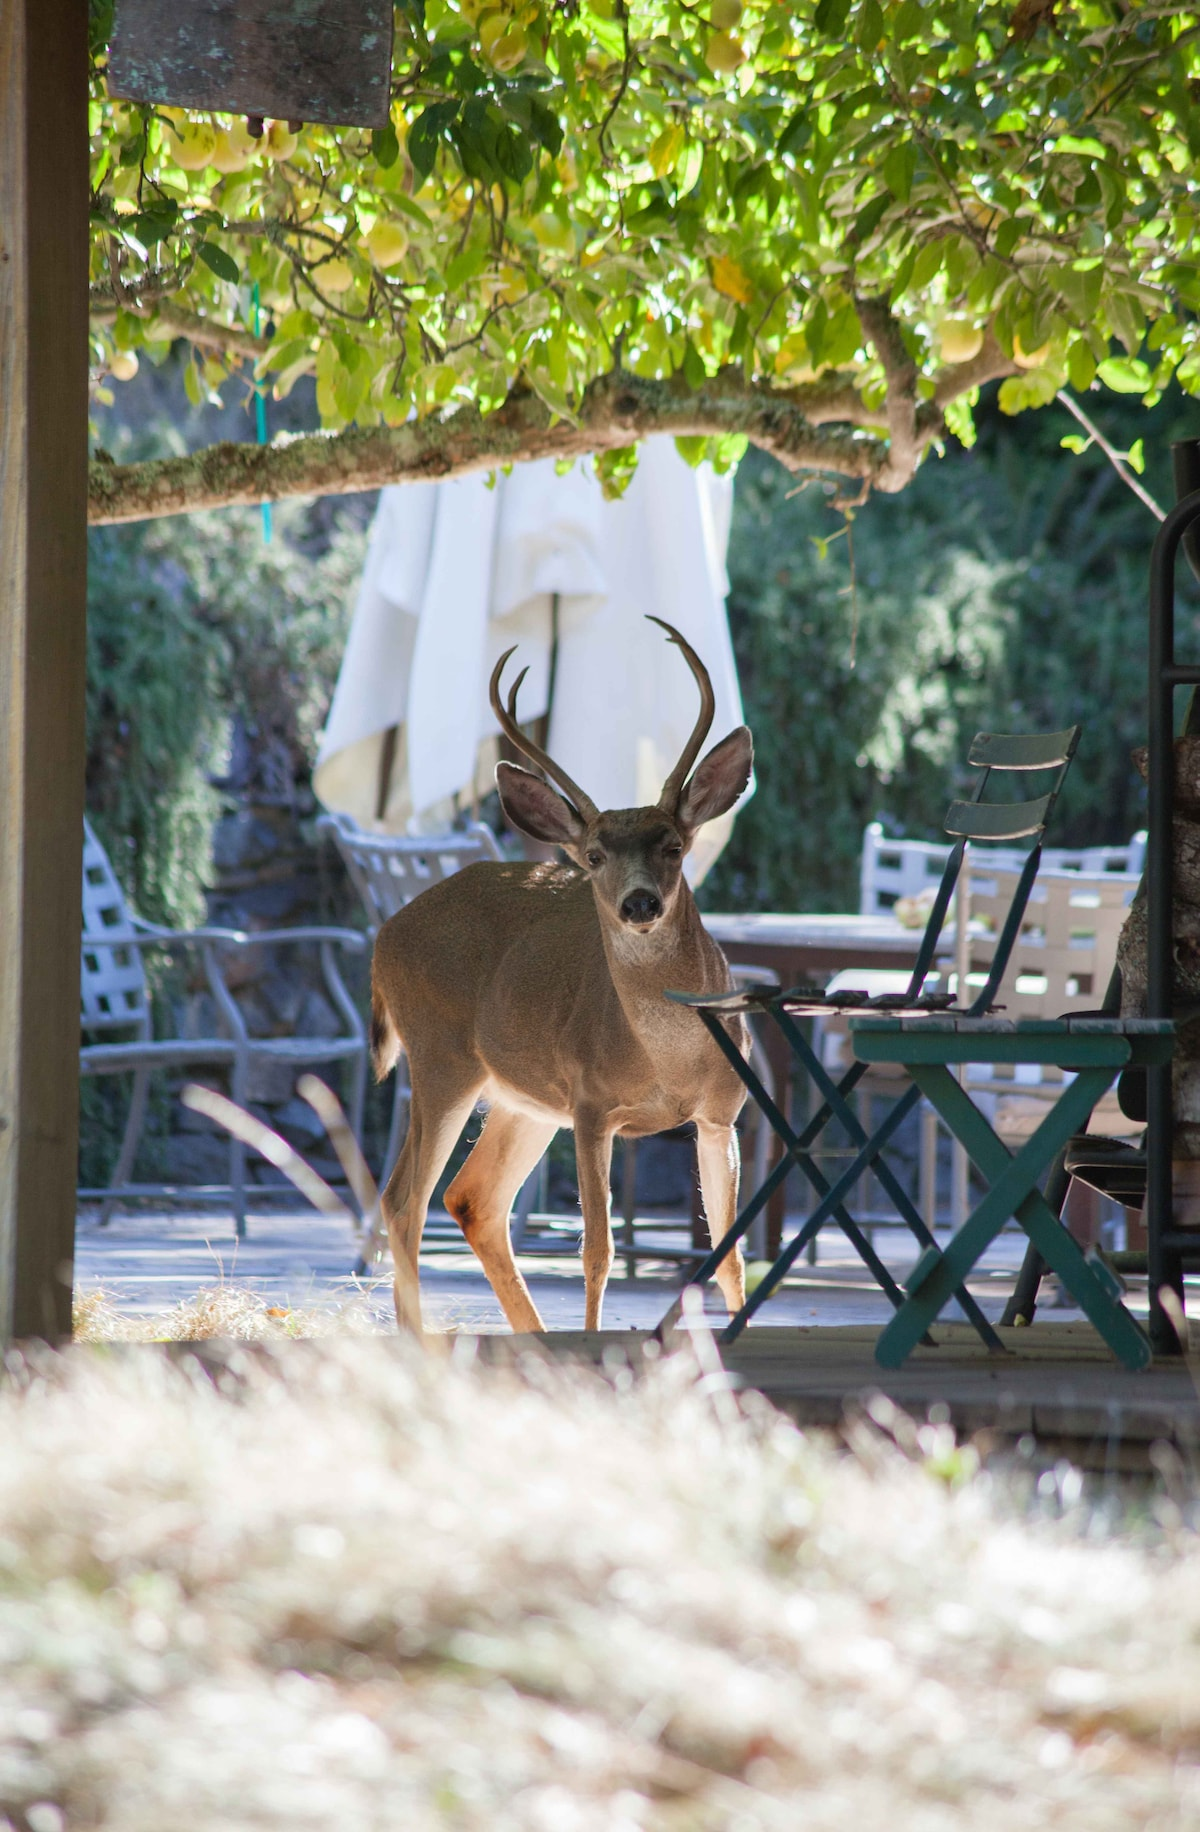 The occasional wildlife sighting is part of the Eco Refuge experience. Sometimes, as in the Fall, a buck or two turns up in the apple orchard outside the kitchen for a snack. Photo by Richard Olsen.